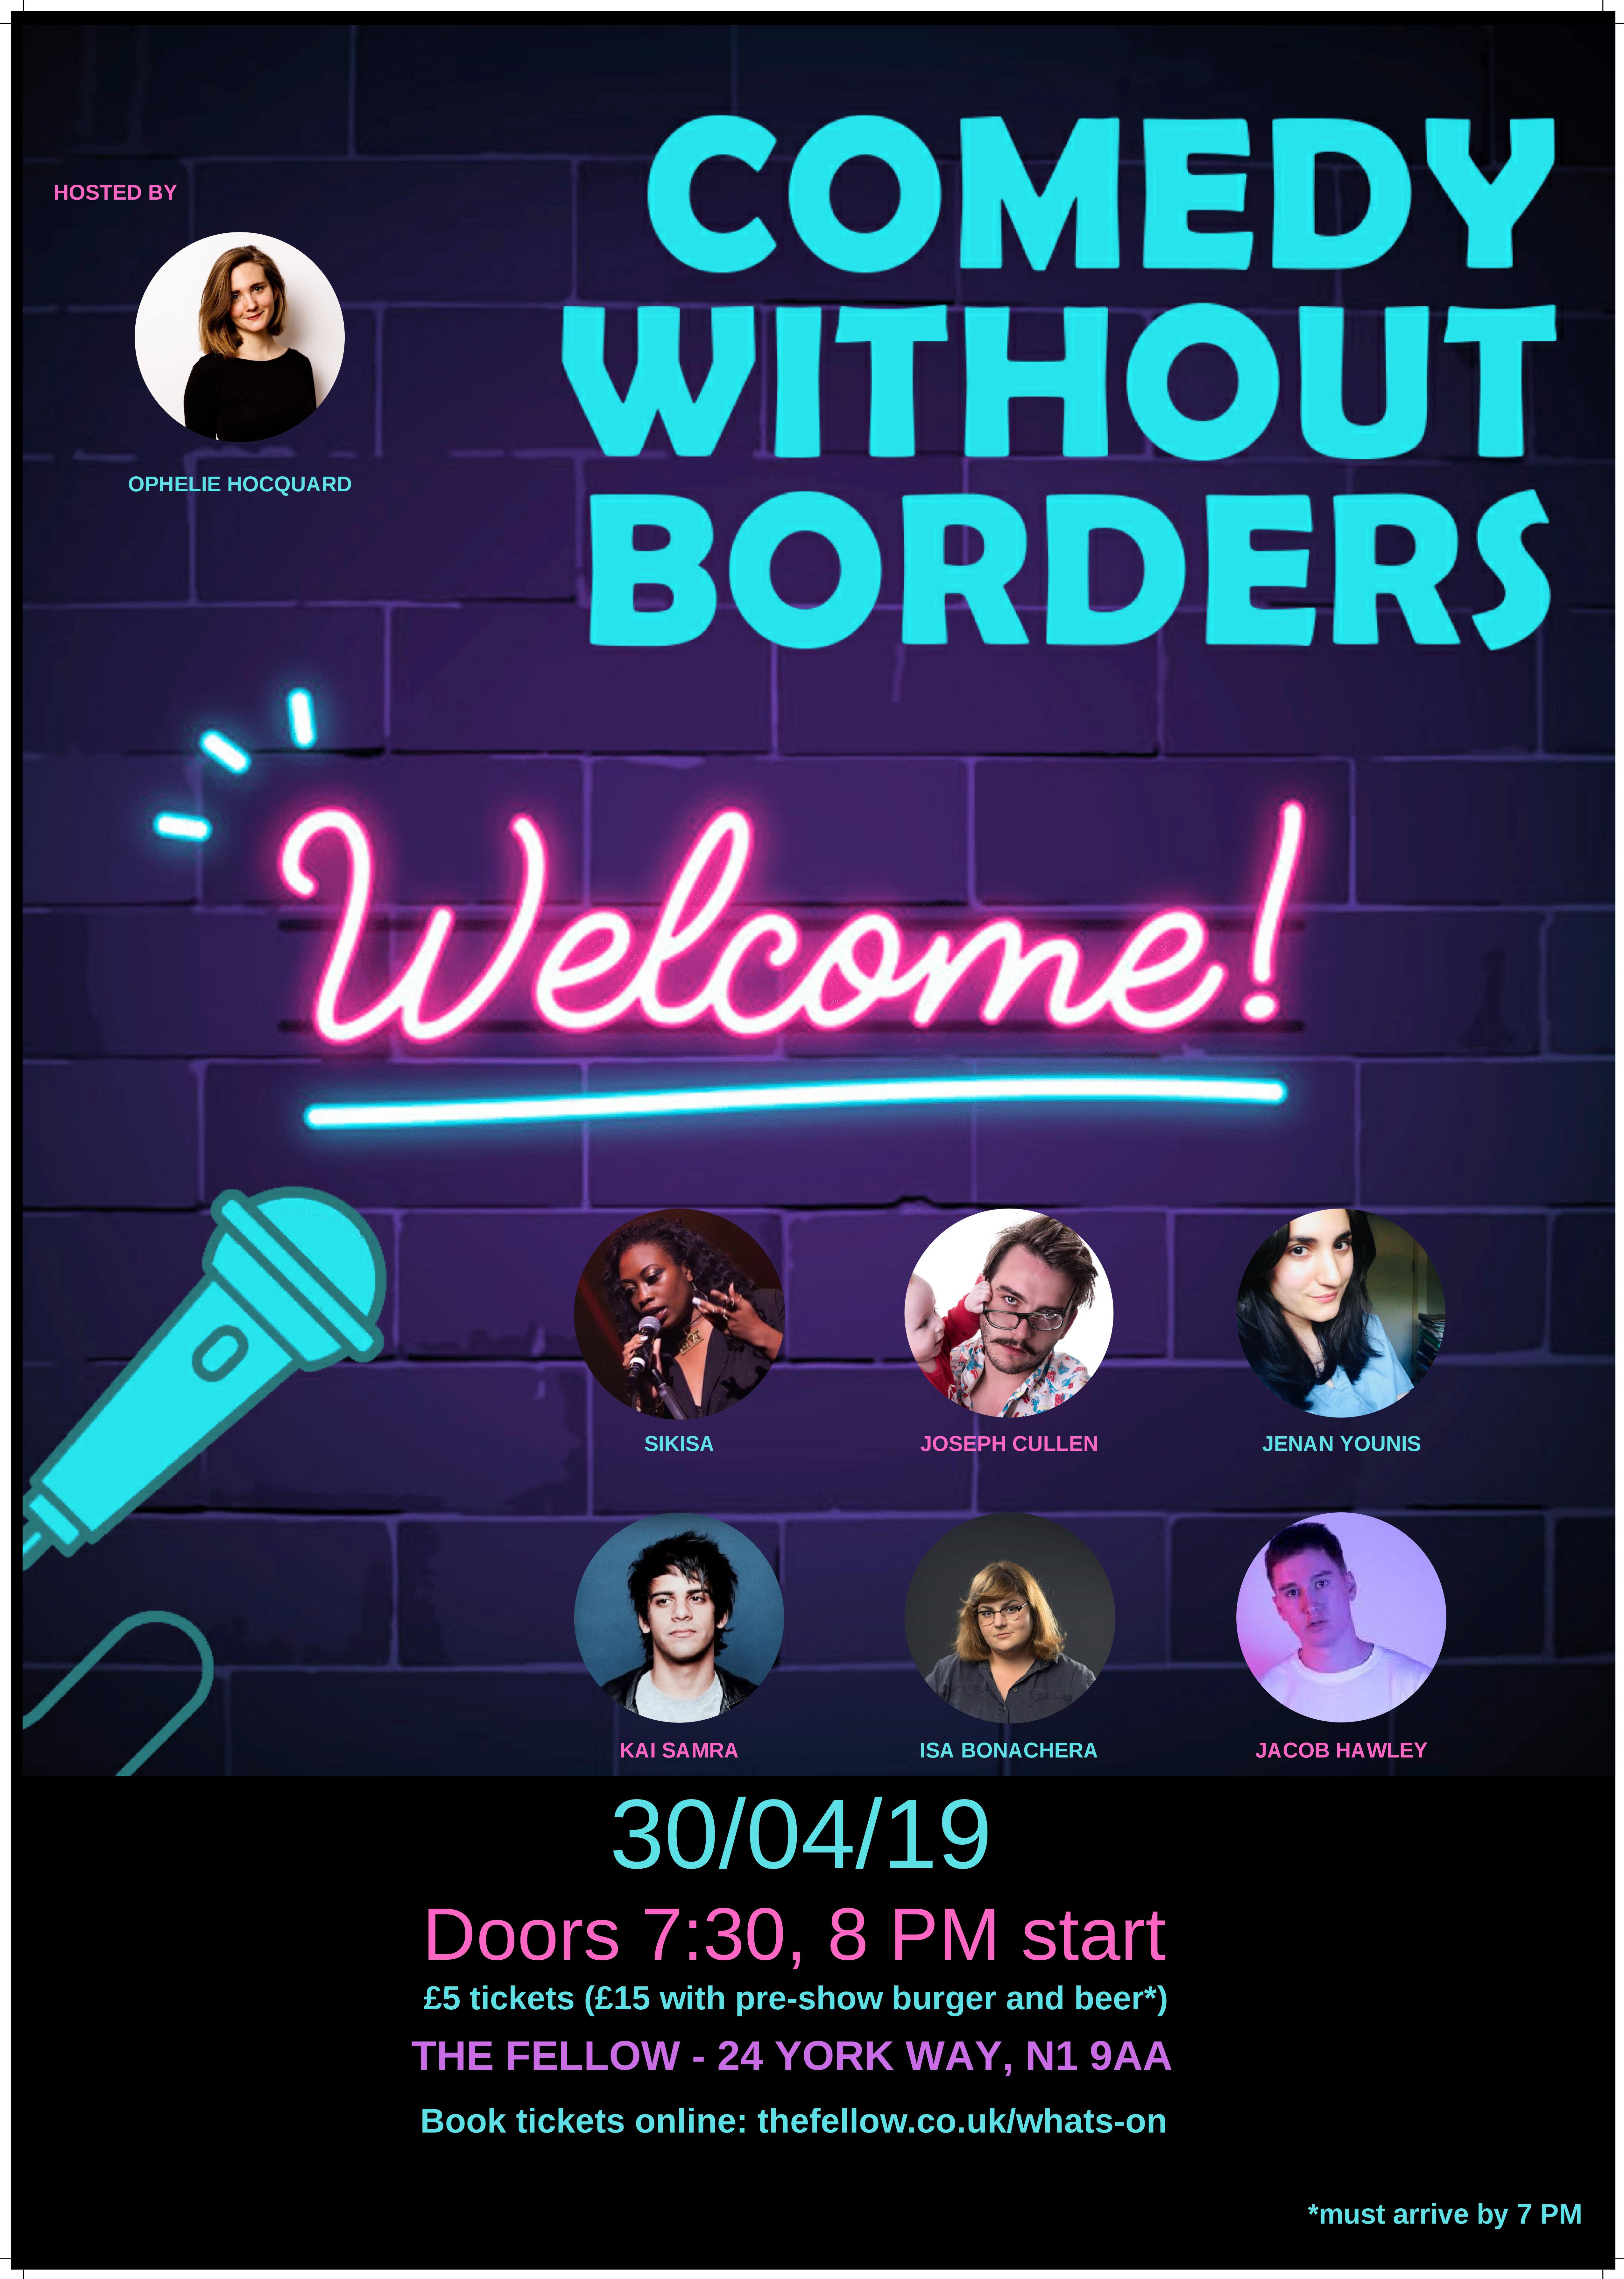 Comedy Without Borders